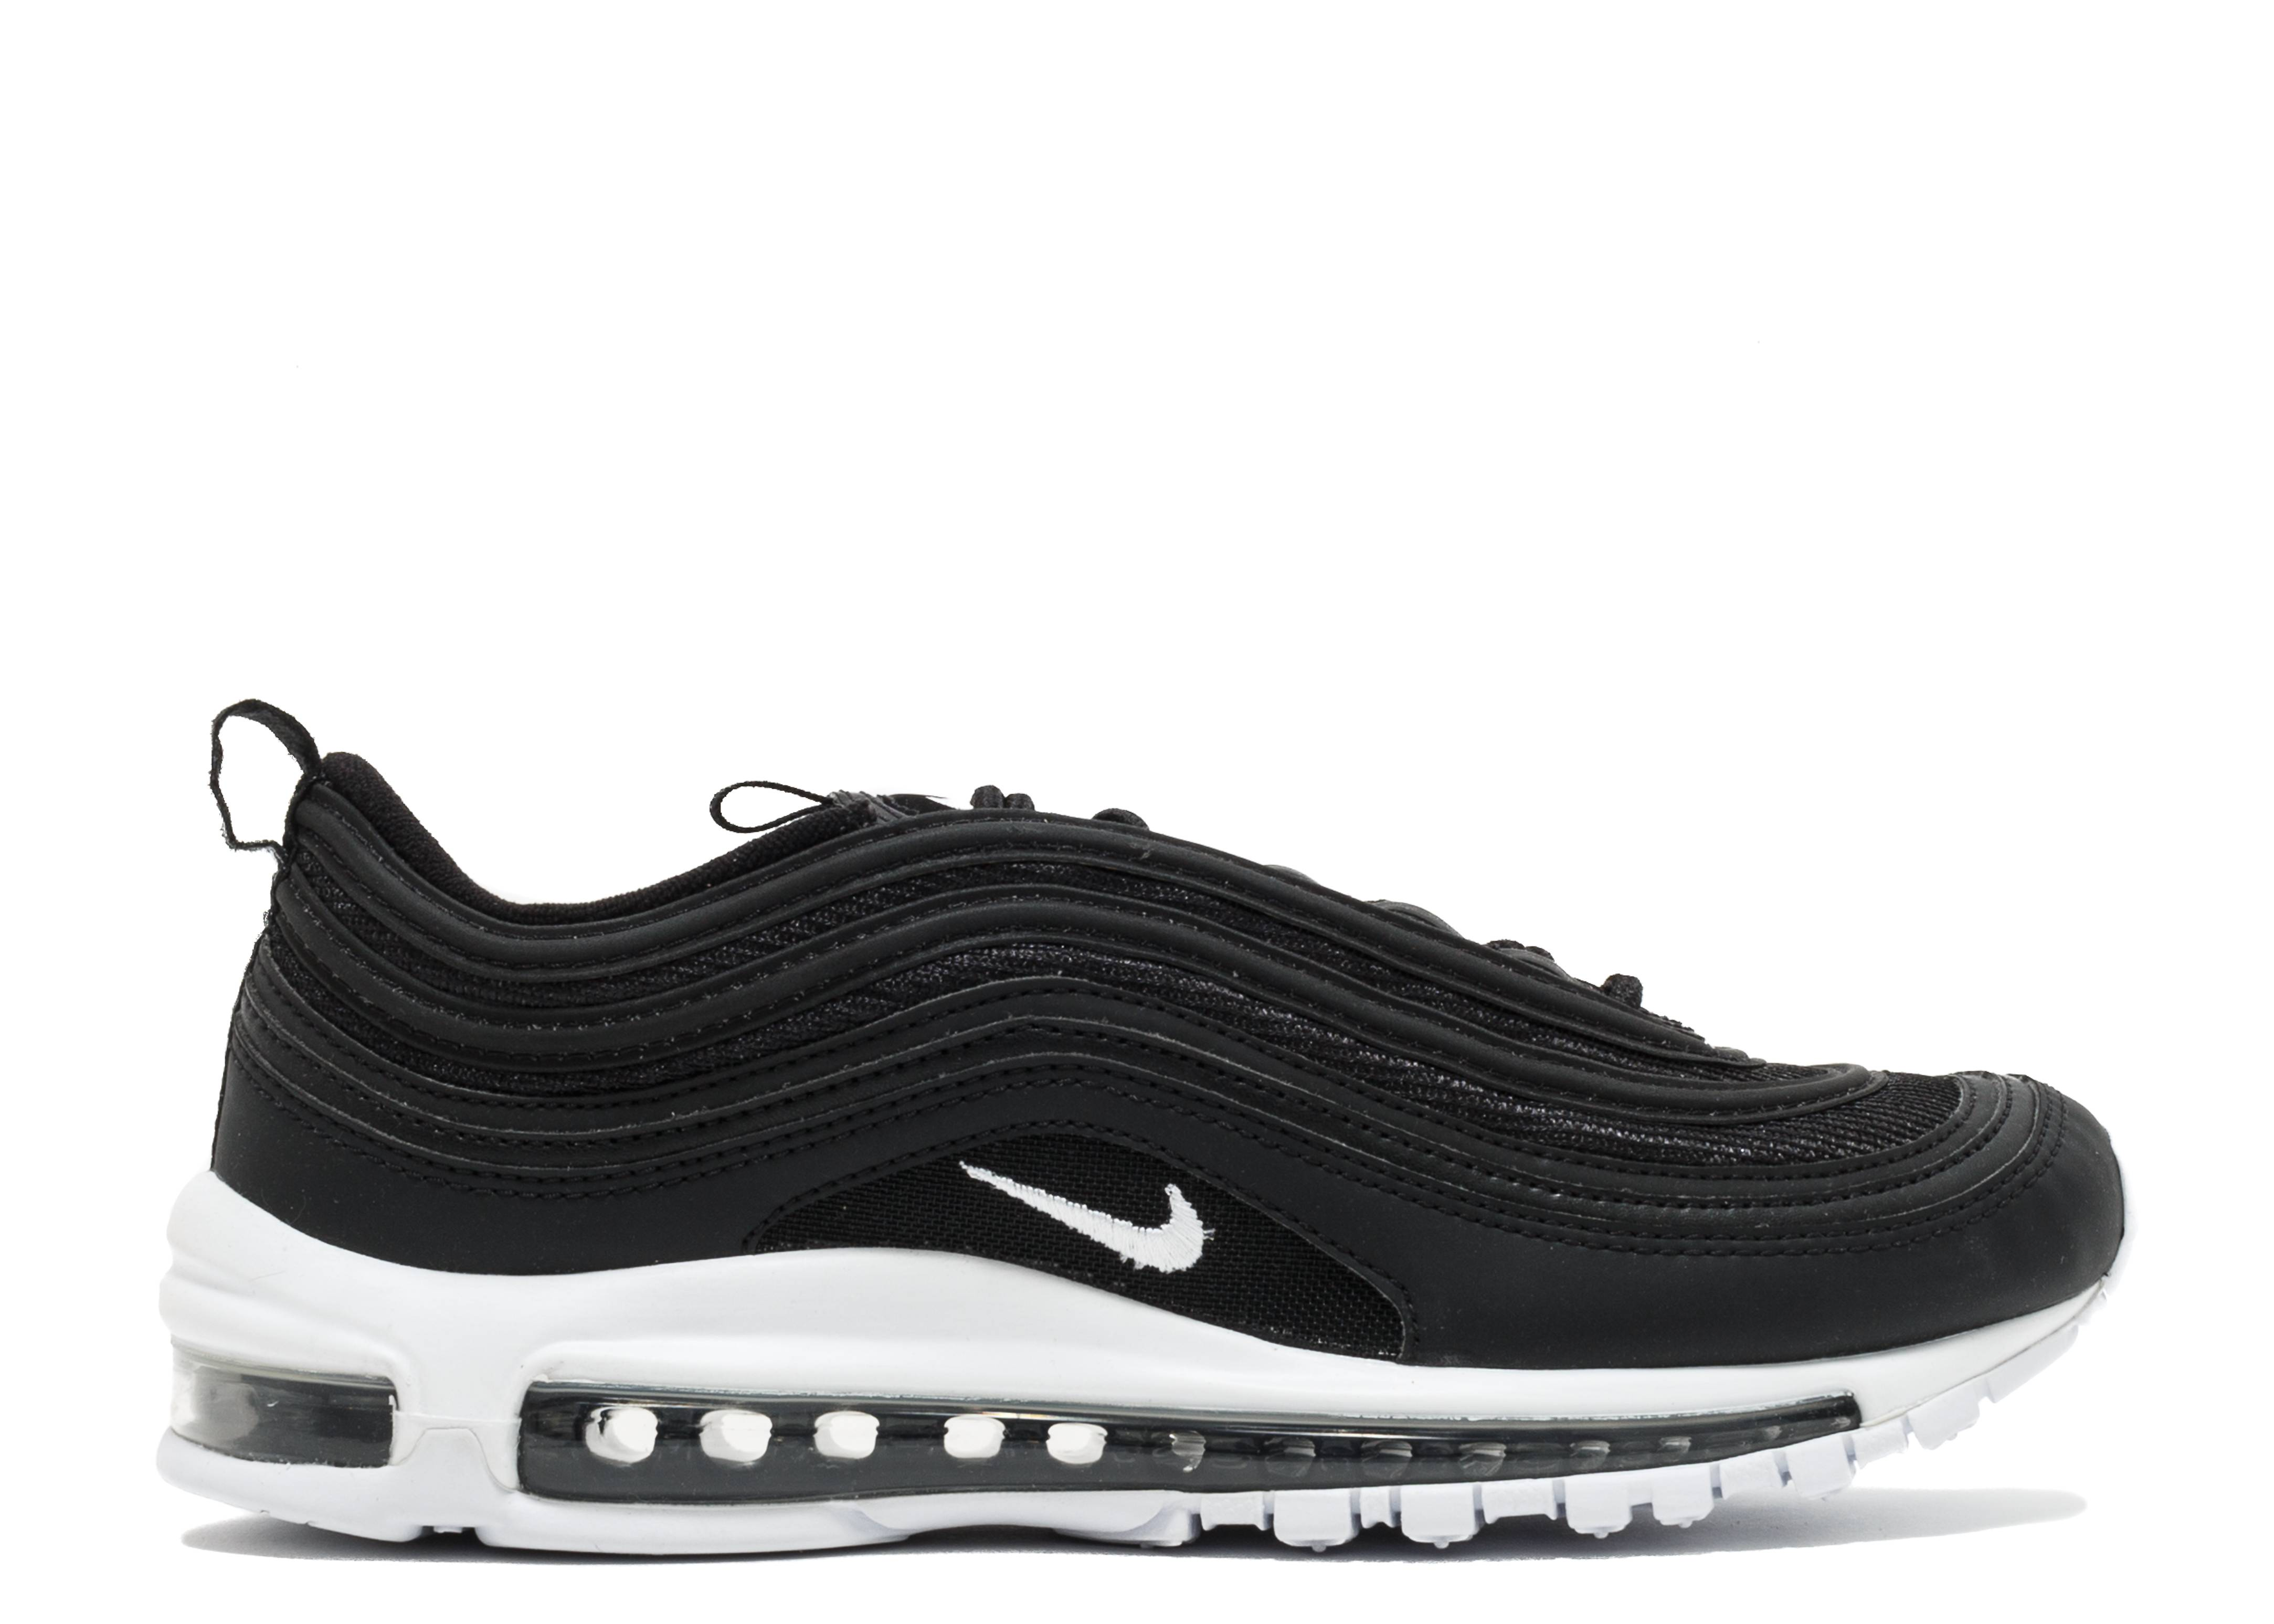 A Closer Look at UNDEFEATED's Nike Air Max 97